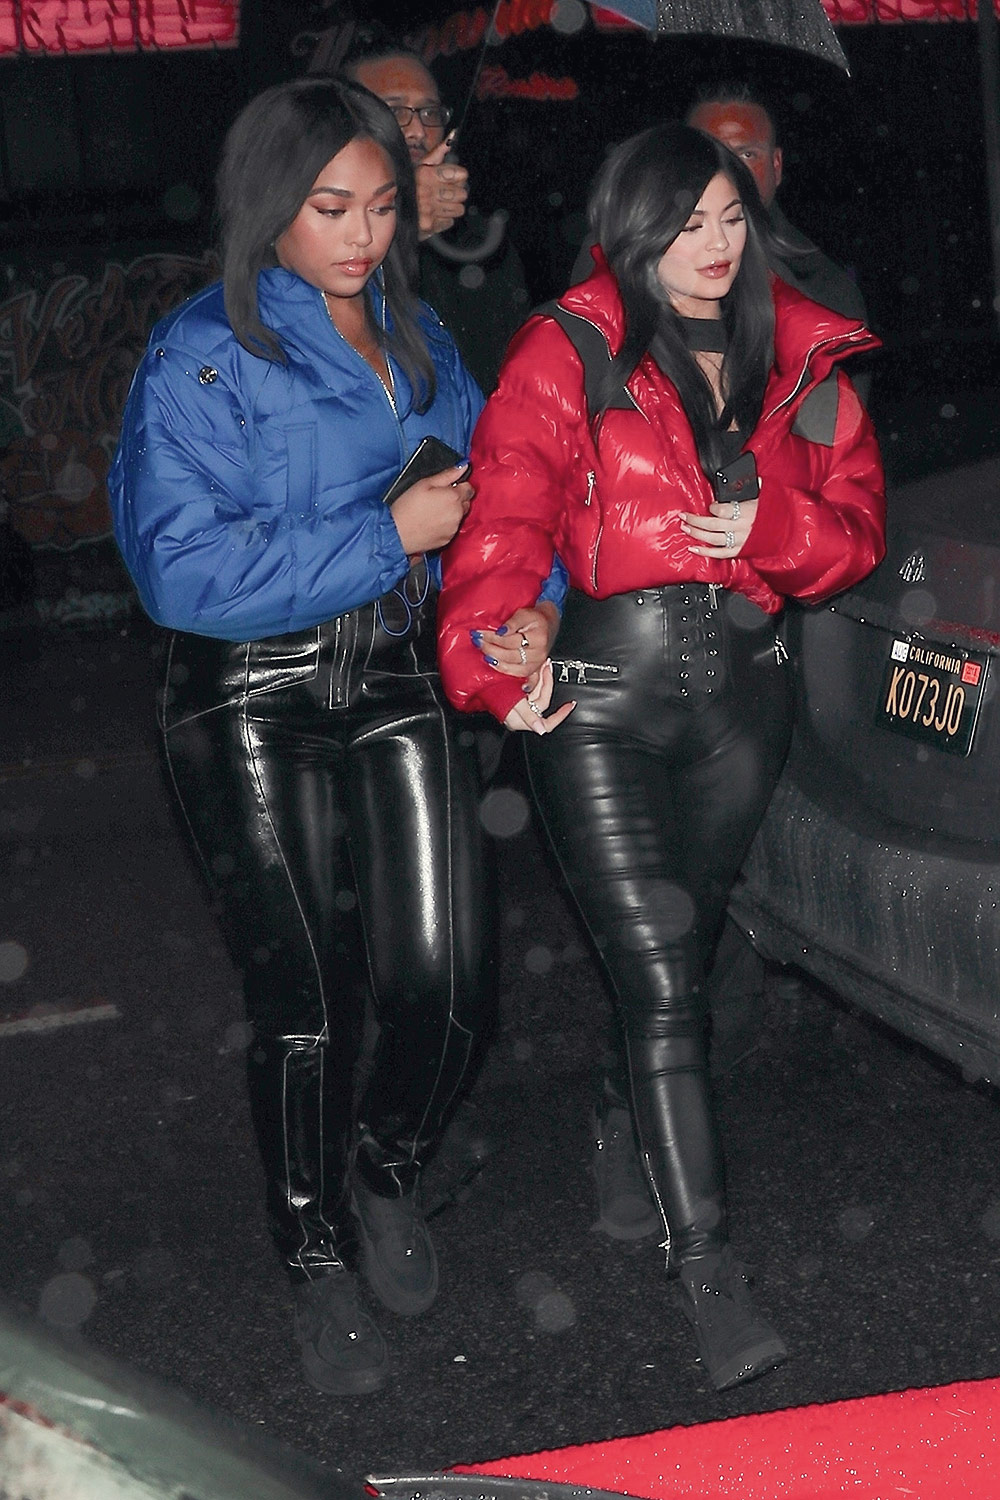 Kylie Jenner leaving Tristan Thompson's birthday celebration